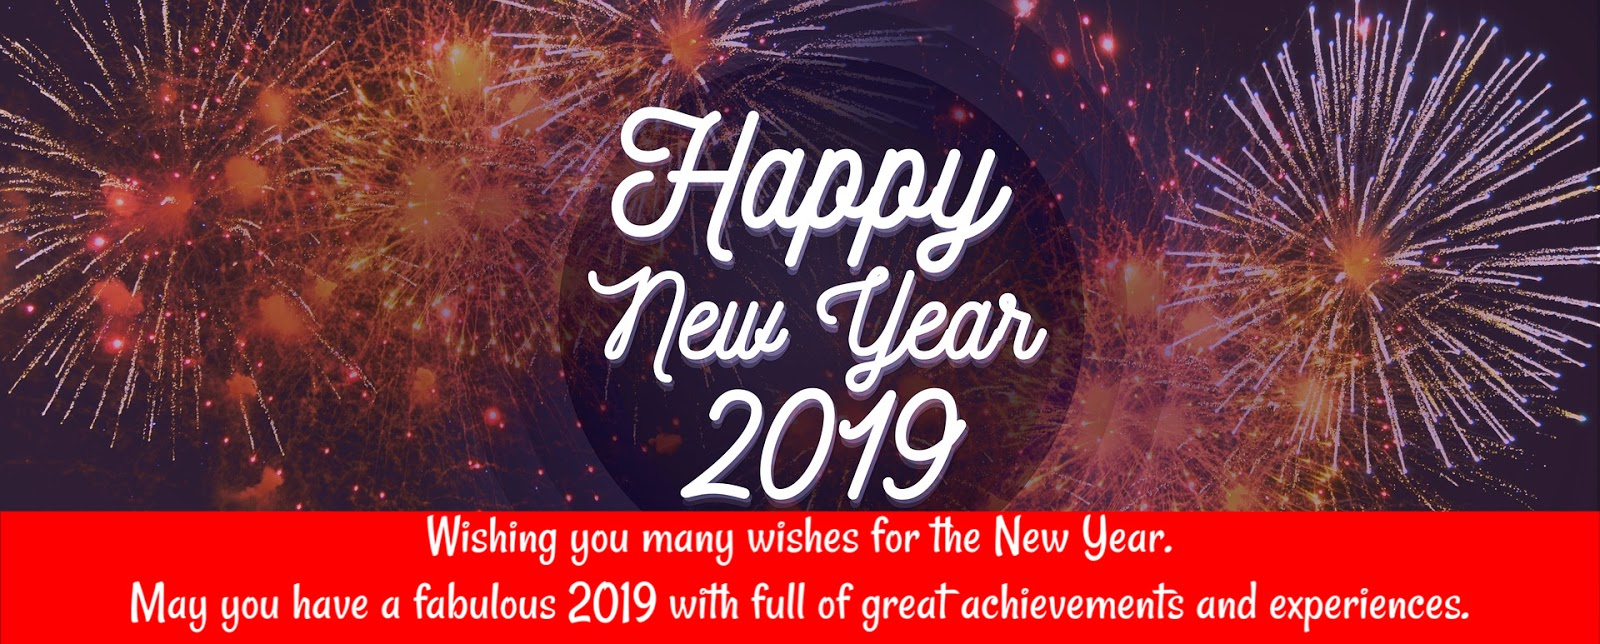 happy new year 2019 cover images for social networking sites